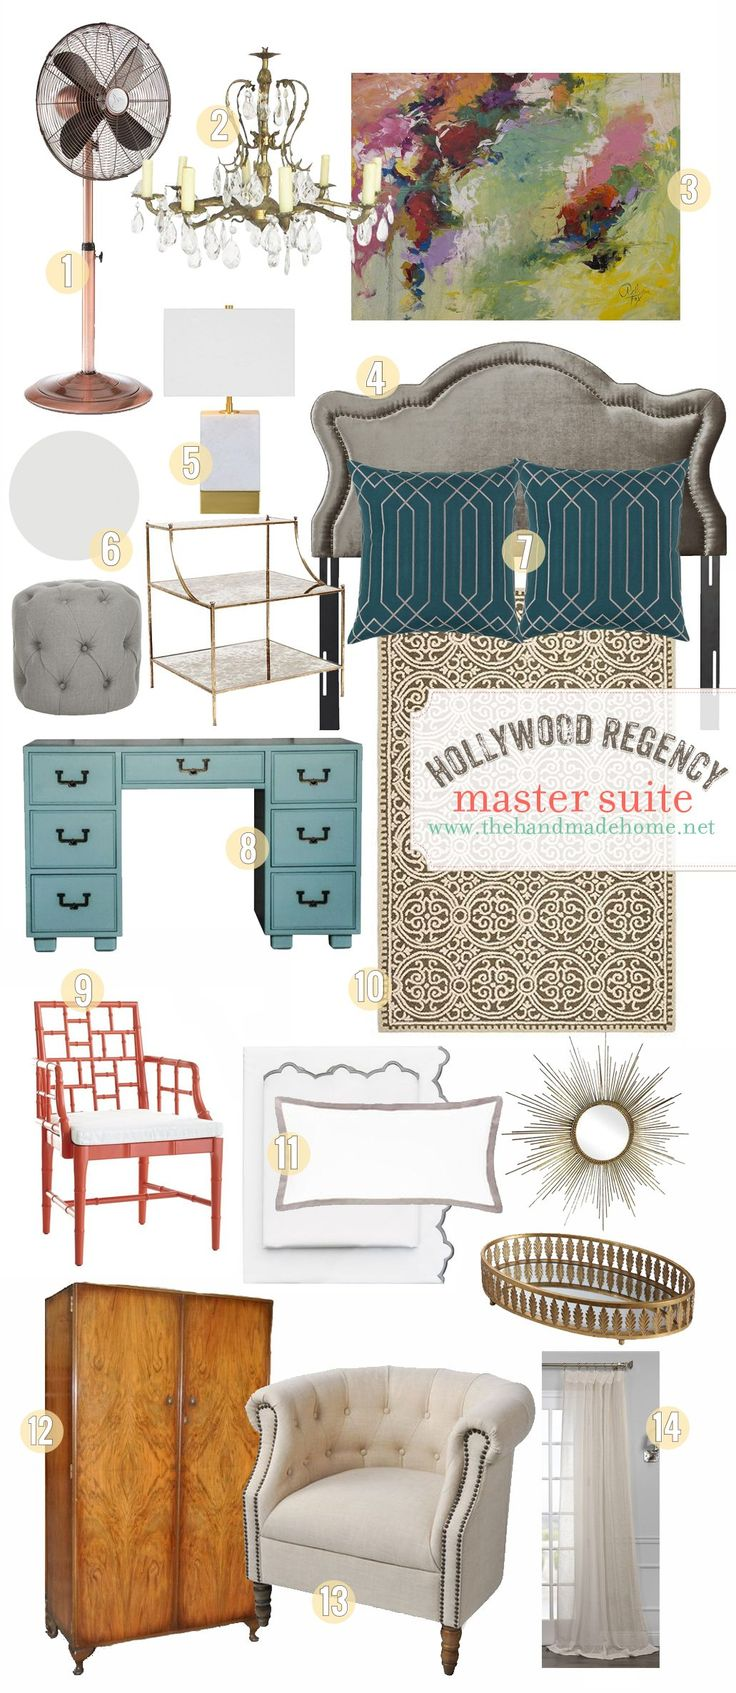 hollywood regency master suite - a look at glamor in the master bedroom